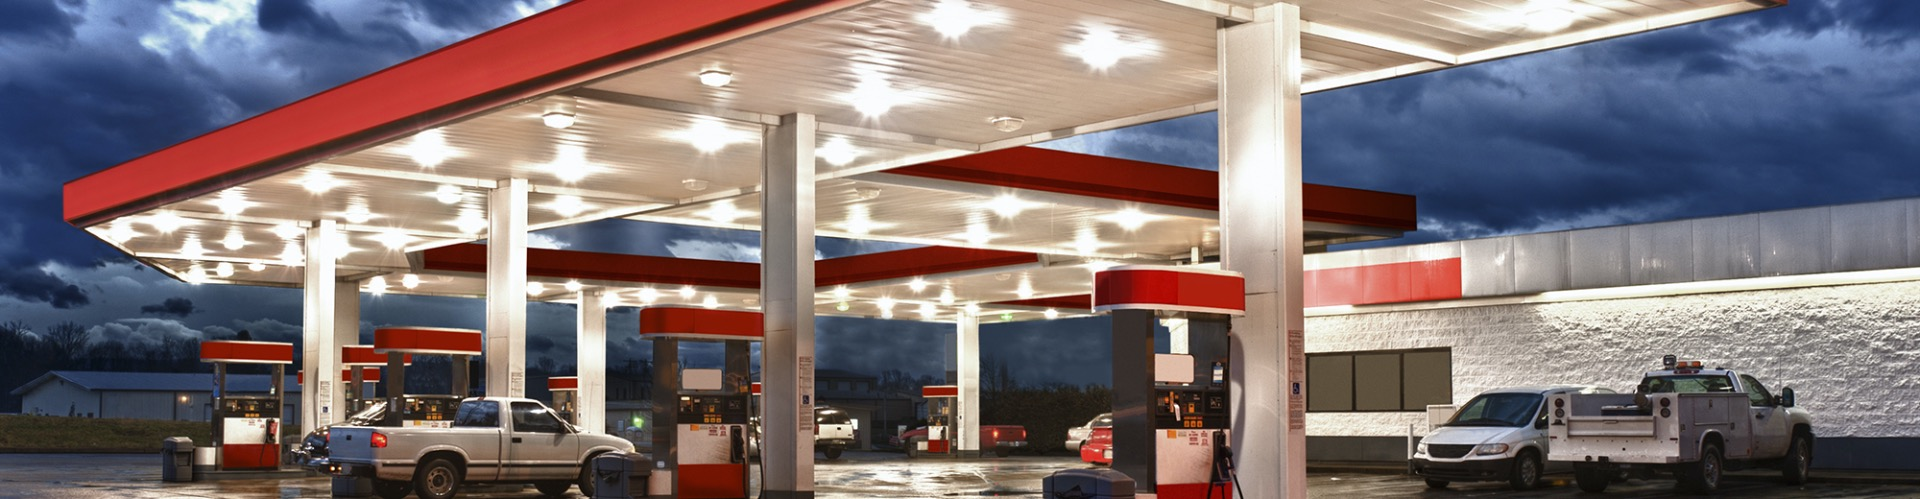 app.retail.GasStation.Header